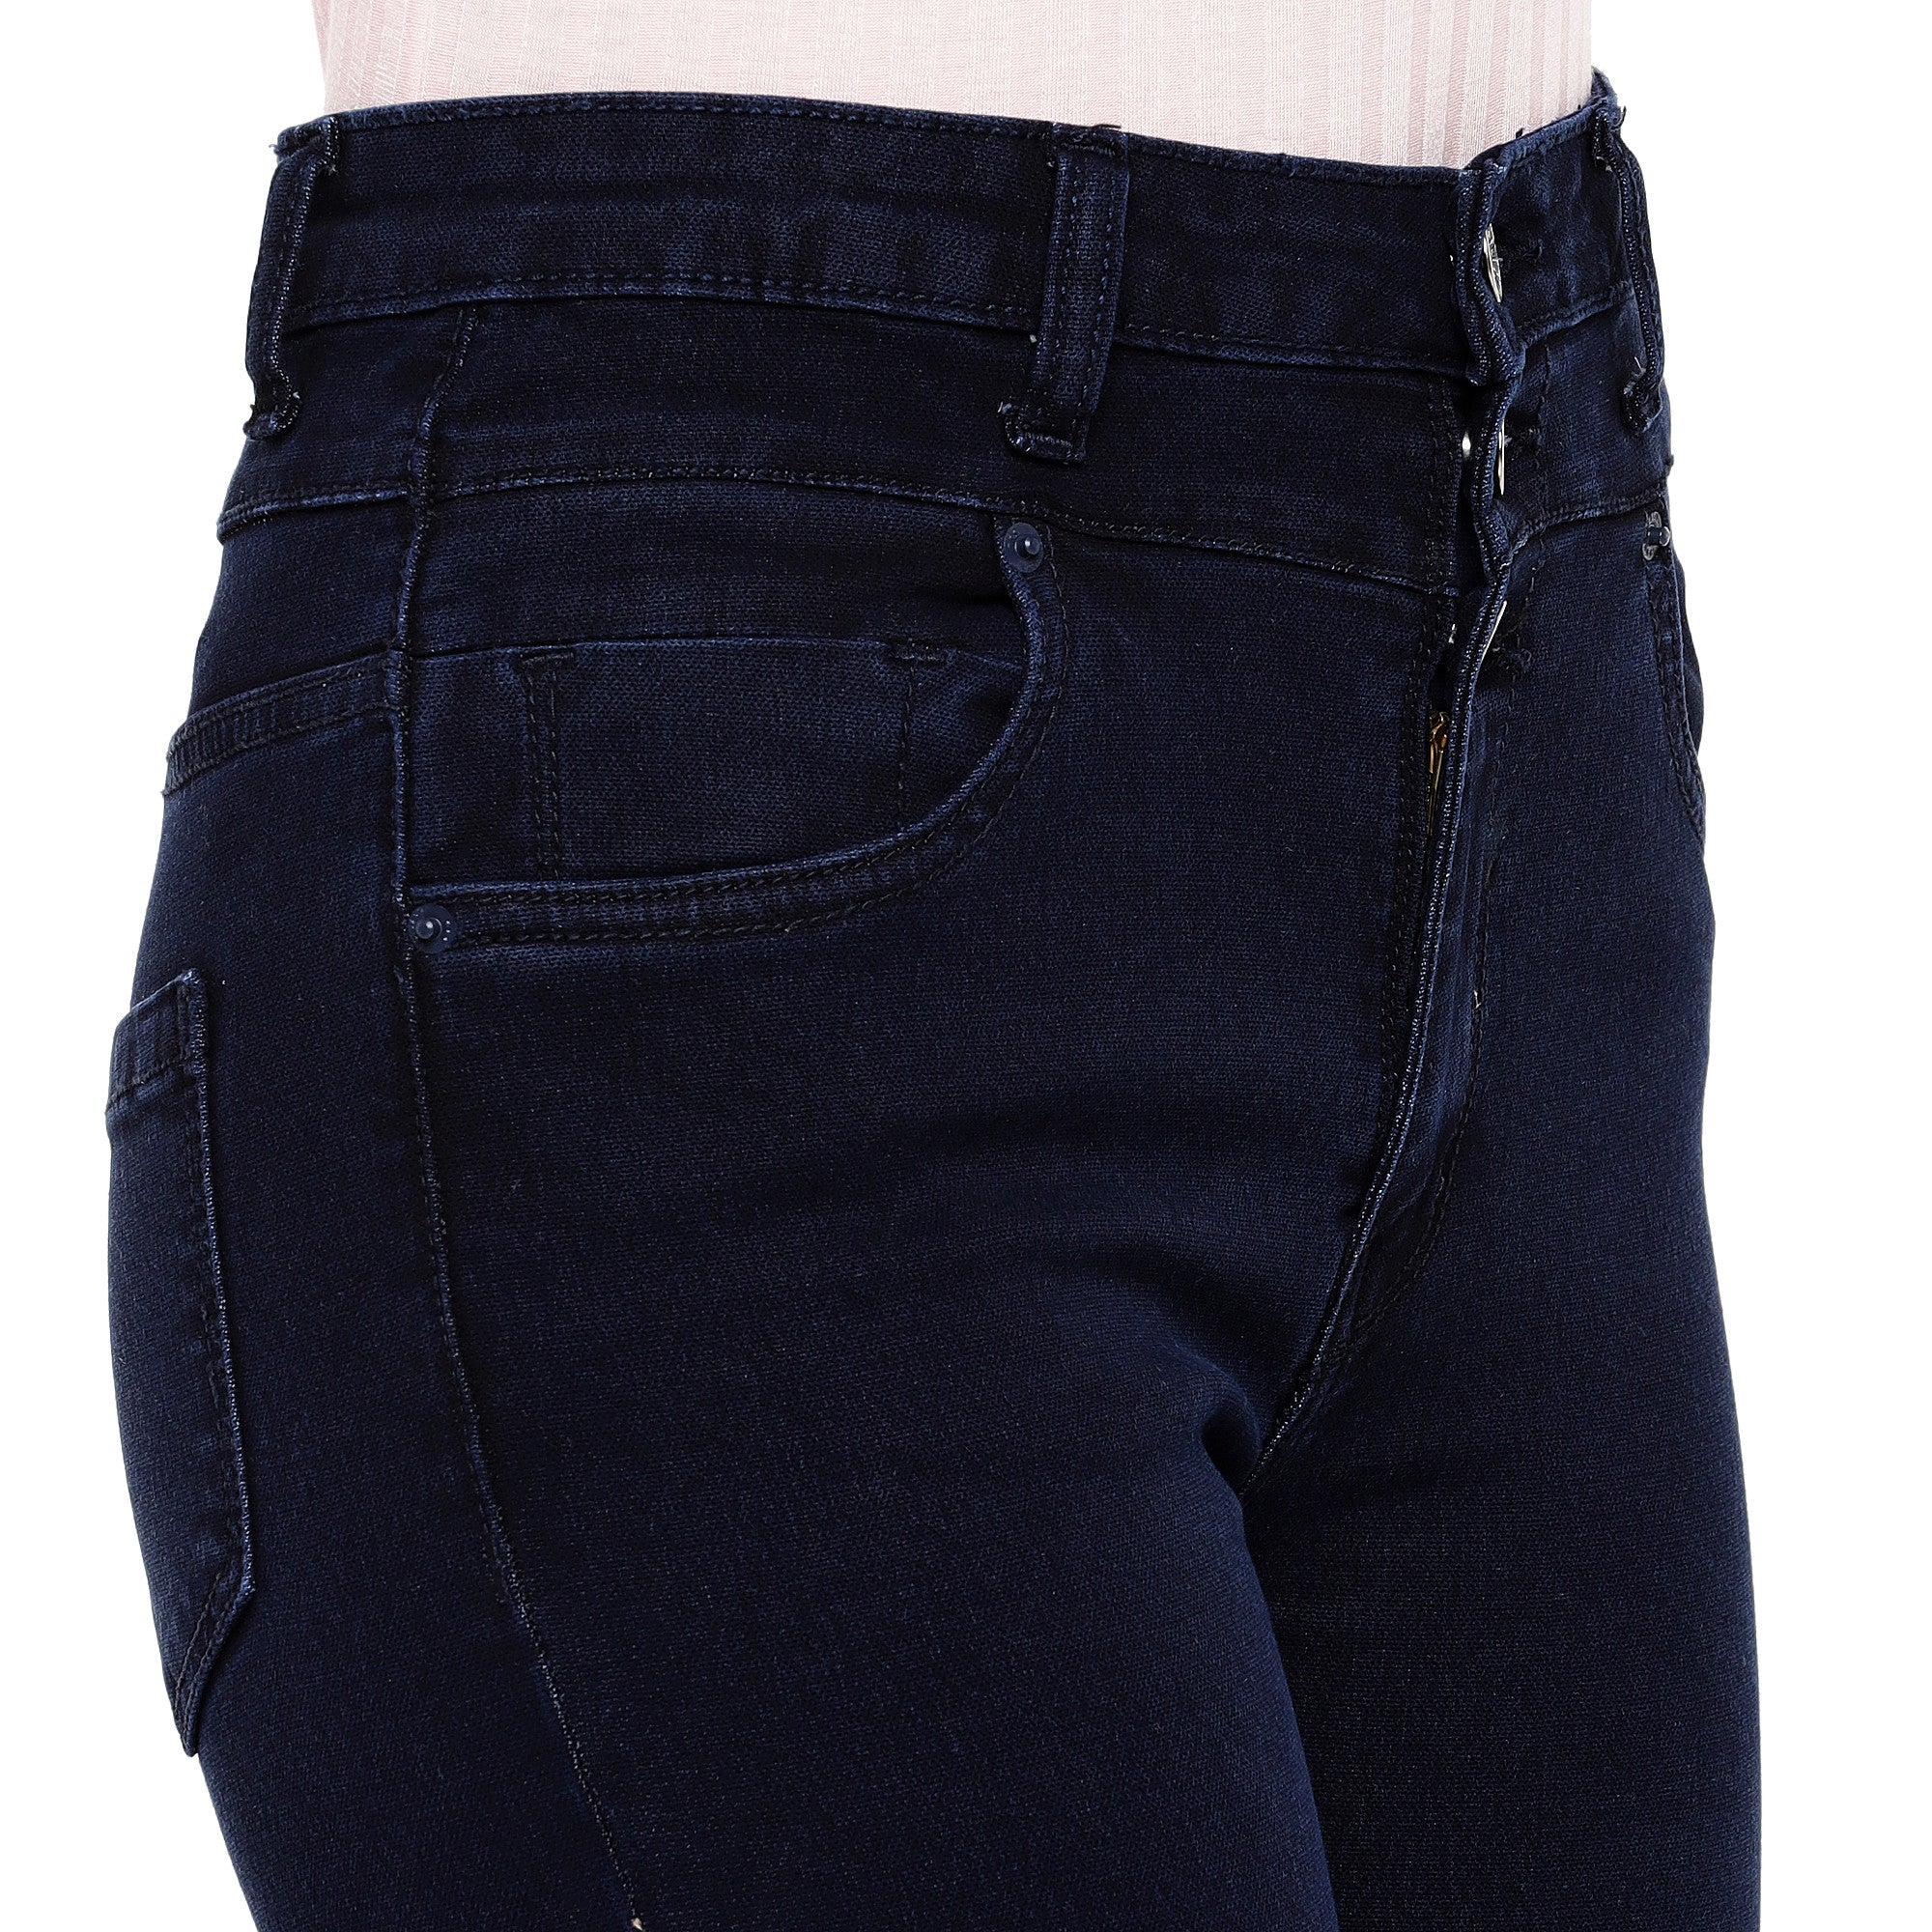 Blue Skinny Fit High-Rise Clean Look Stretchable Jeans-5